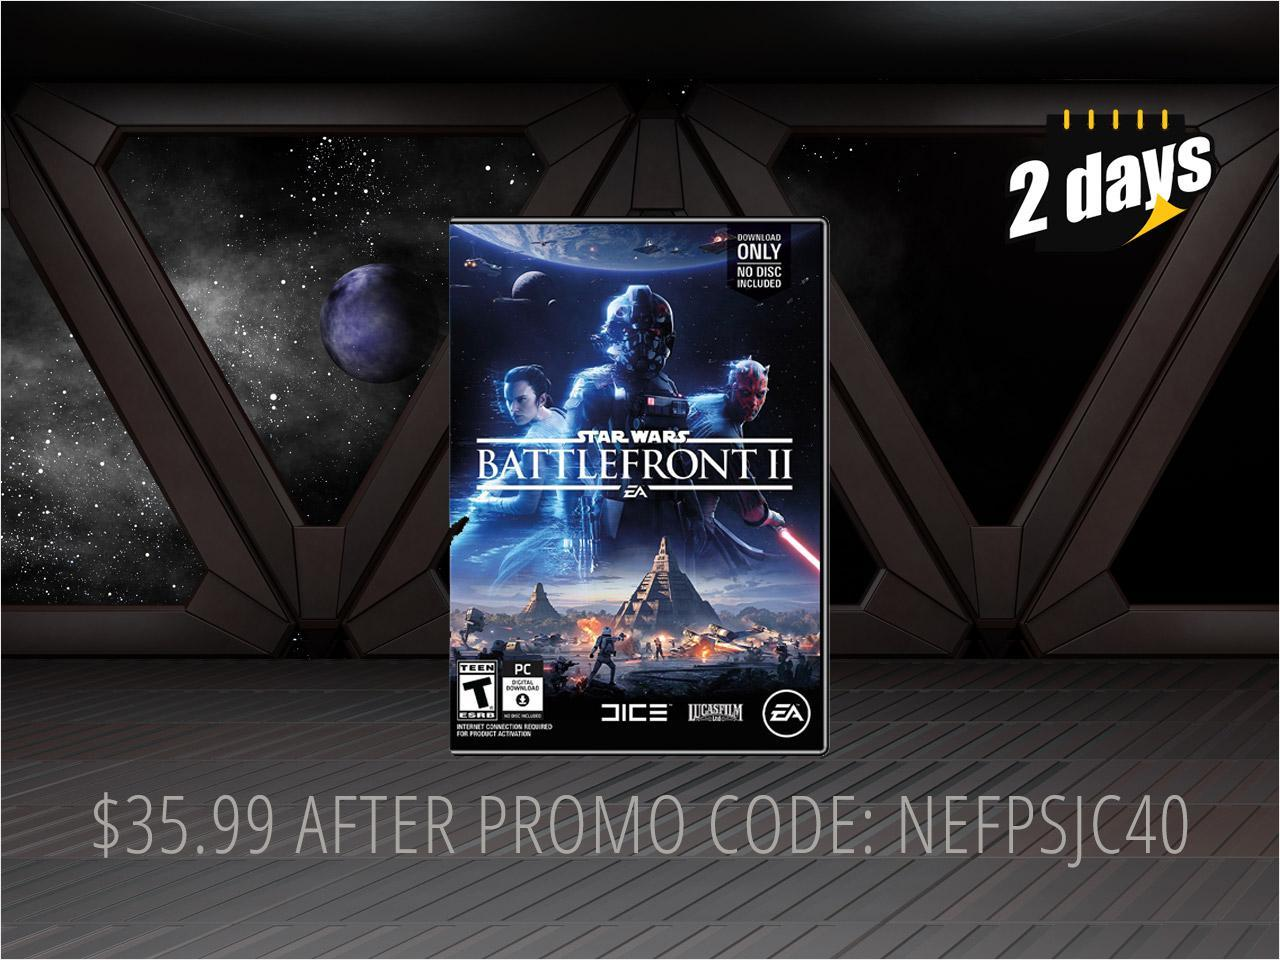 Star Wars Battlefront II - PC (Physical Key Code - No Disc